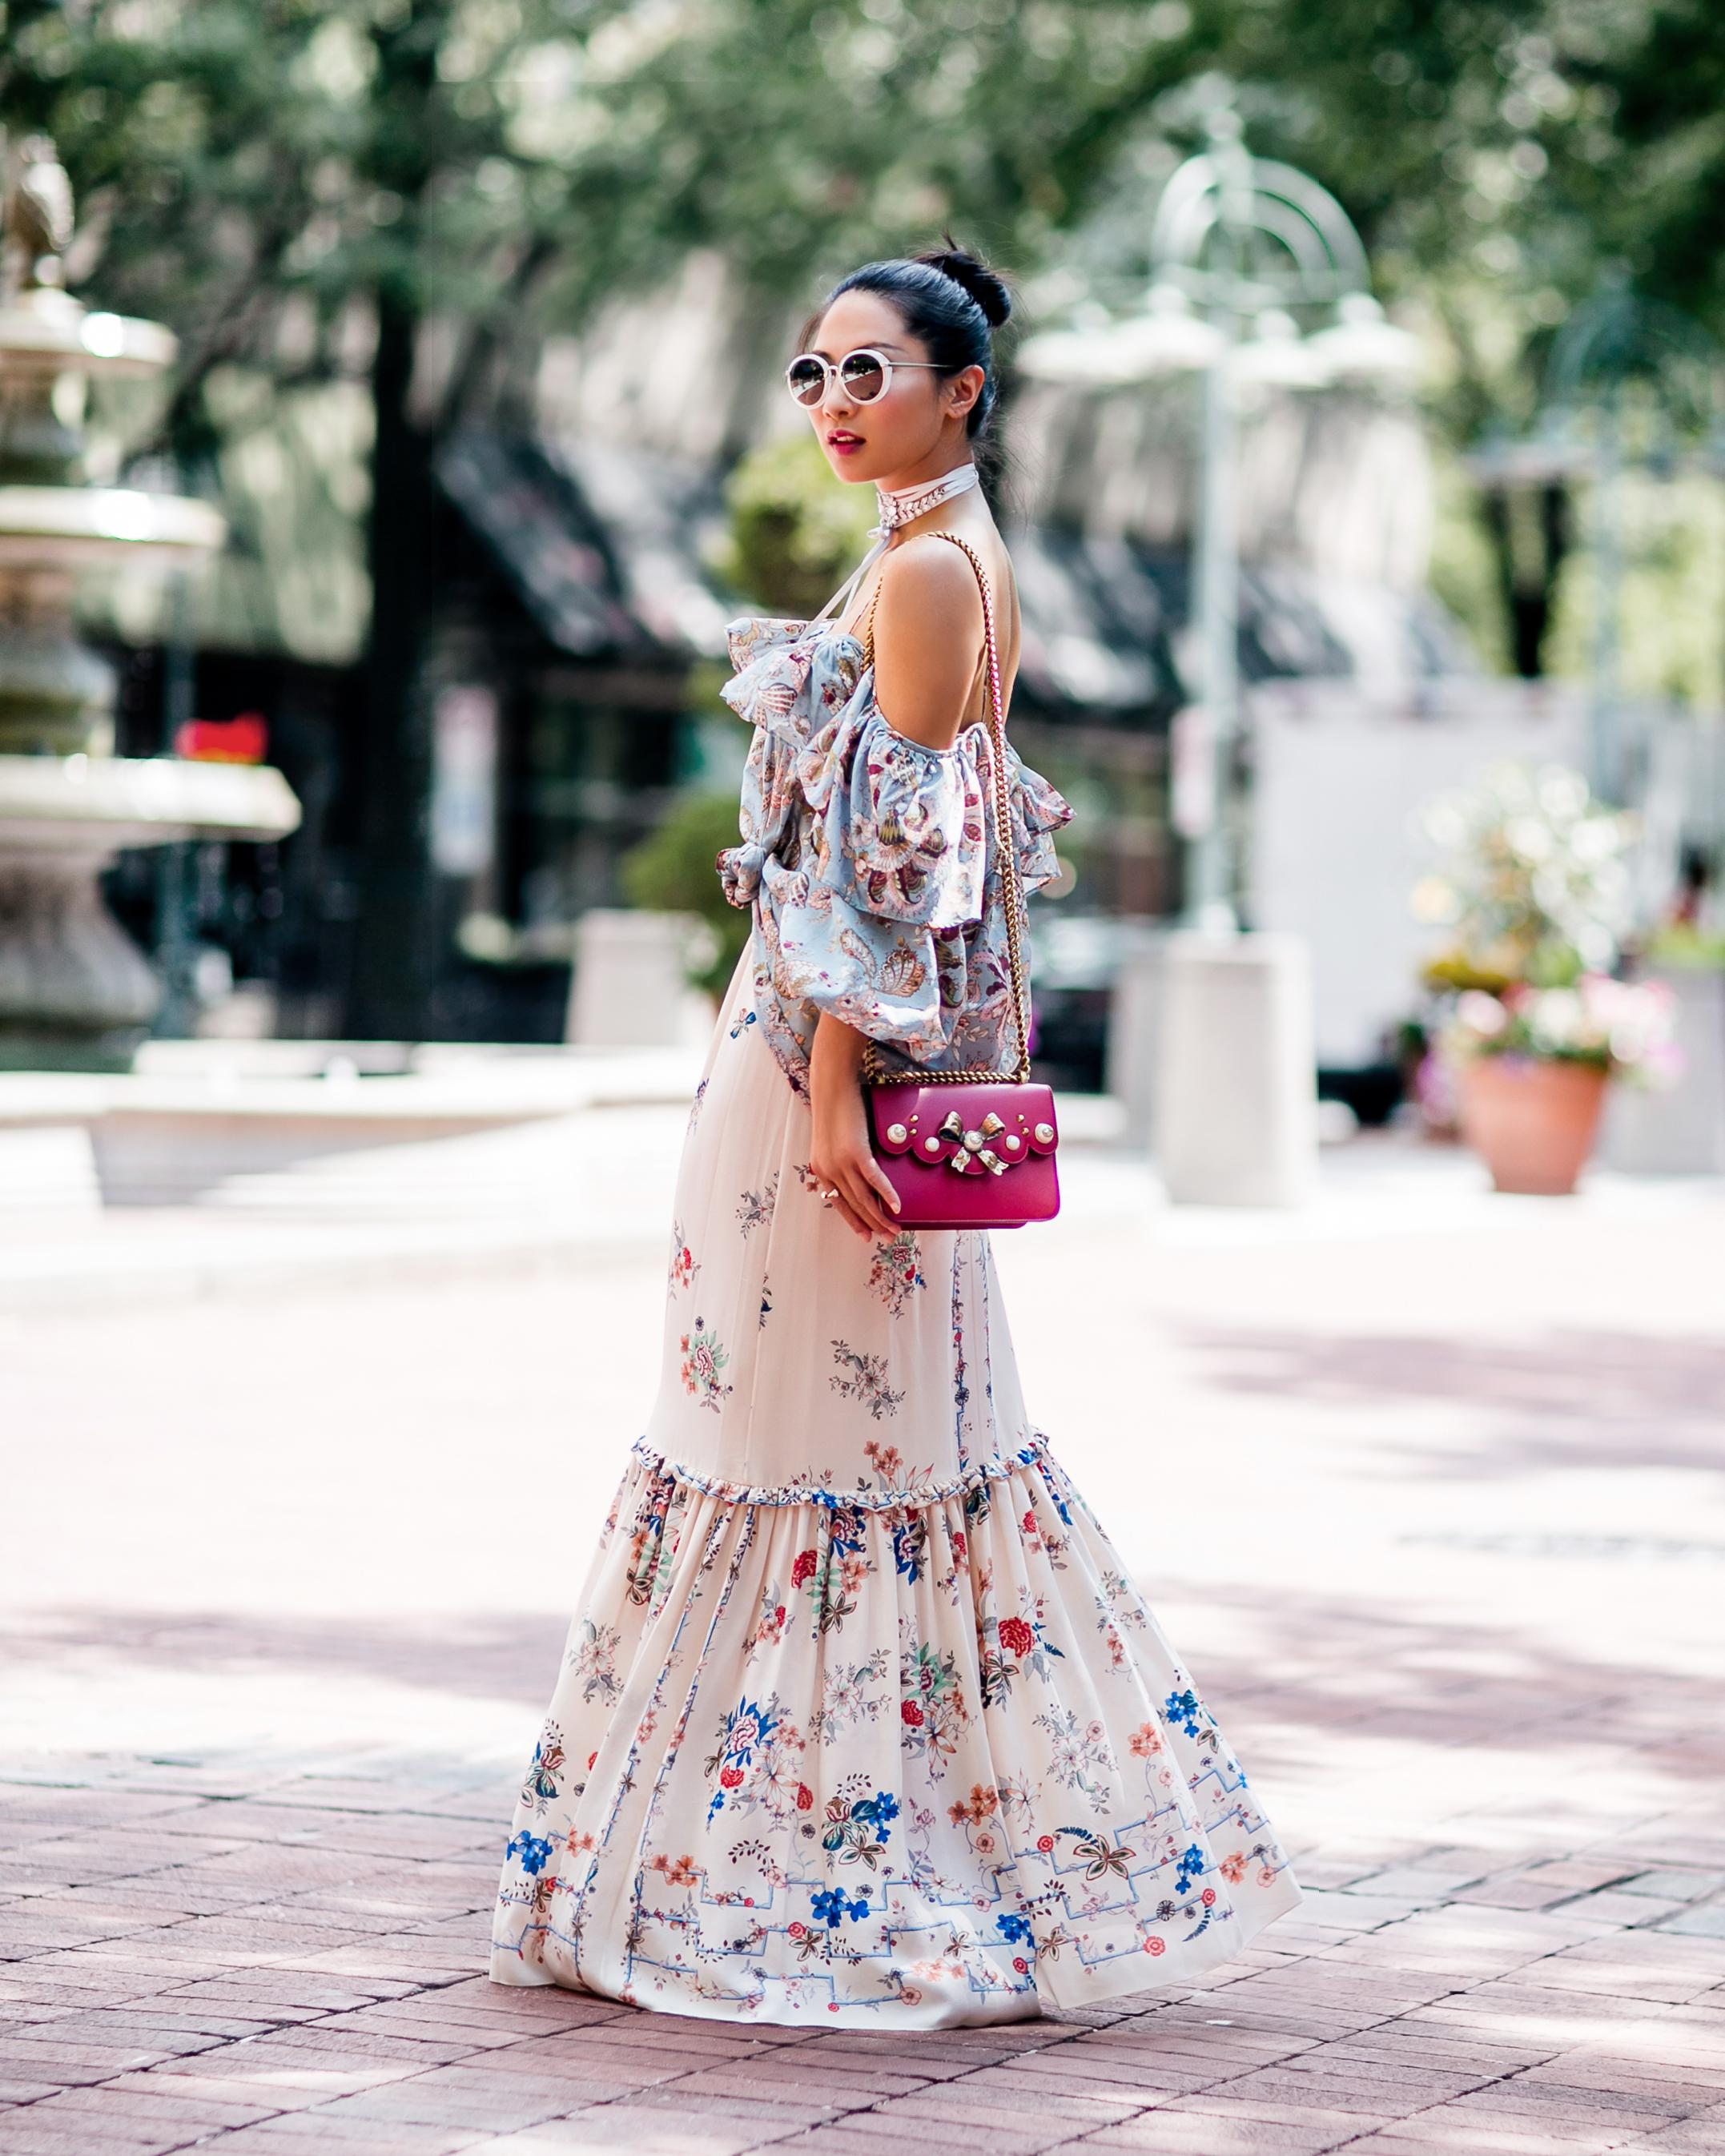 IMAGE: IG user @petiteflowerpresents / POST: Mixing different #floralprints is challenging but super fun, find a common color to tie the whole look together. Throwback to this look from last summer, both top and skirt are sold out but I've linked some cool options (all under $100). More of yesterday's look and #styletips is now on the blog: www.petiteflowerpresents.com